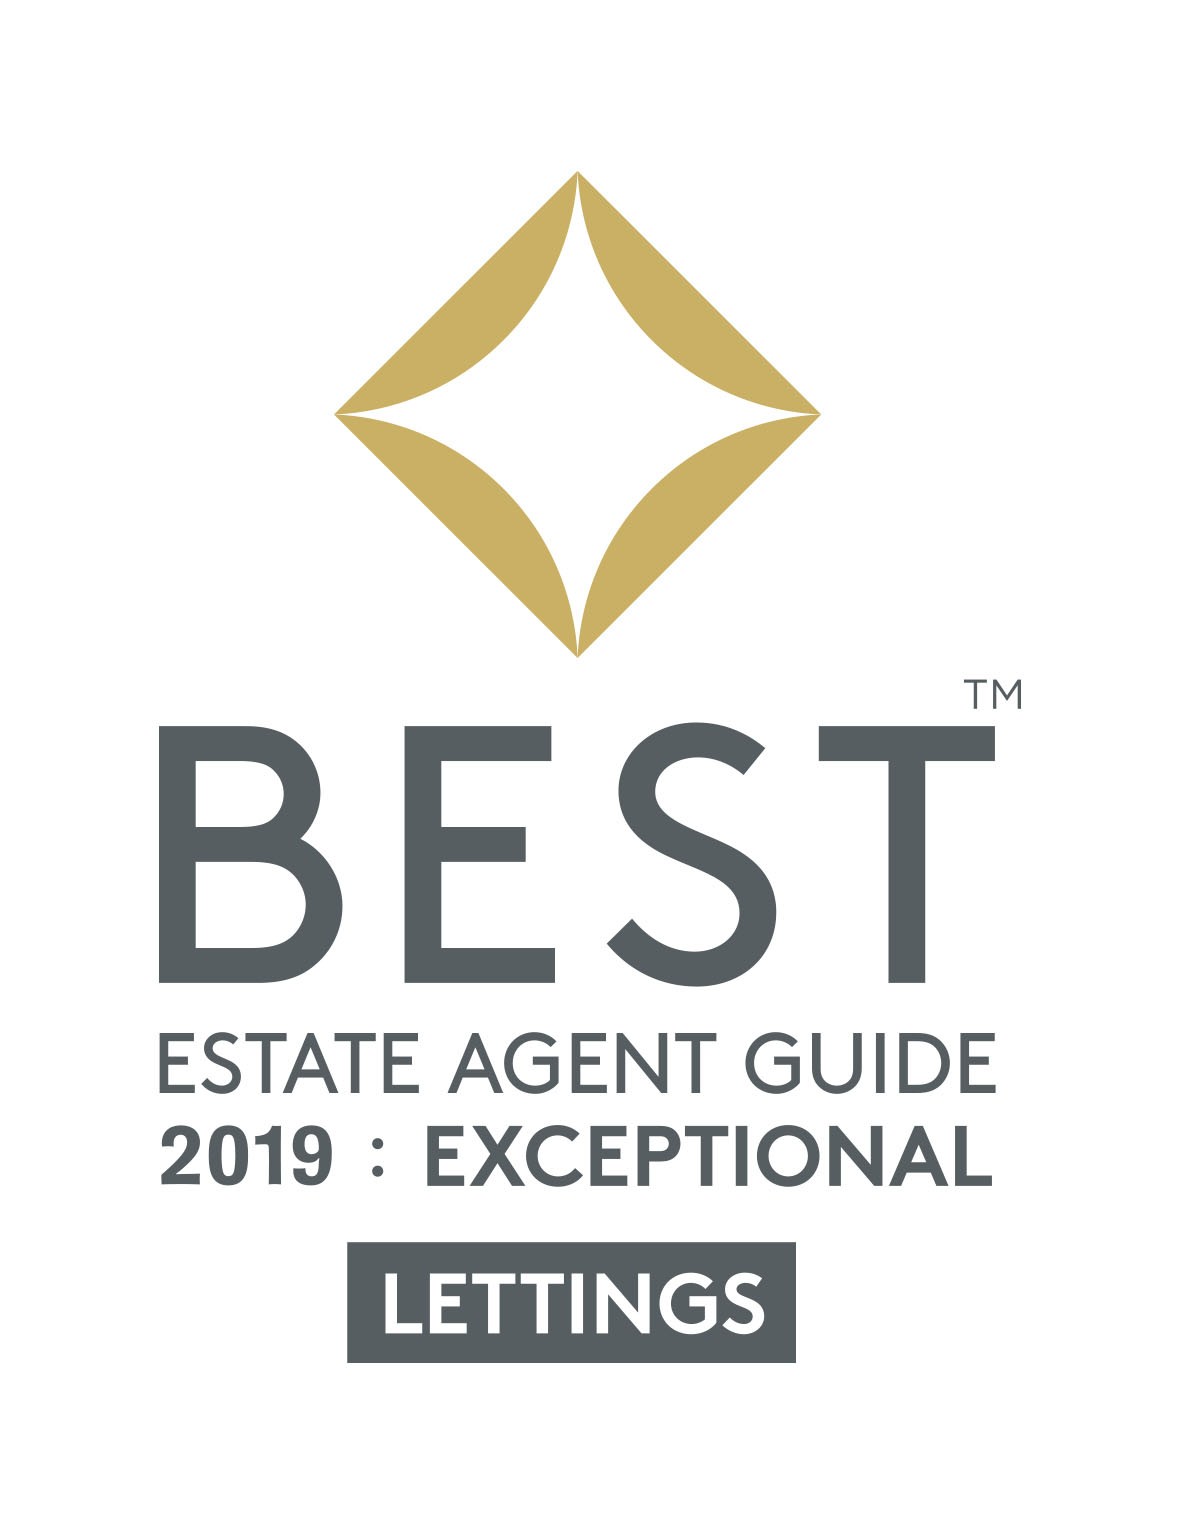 Best estate agent guide 2019,